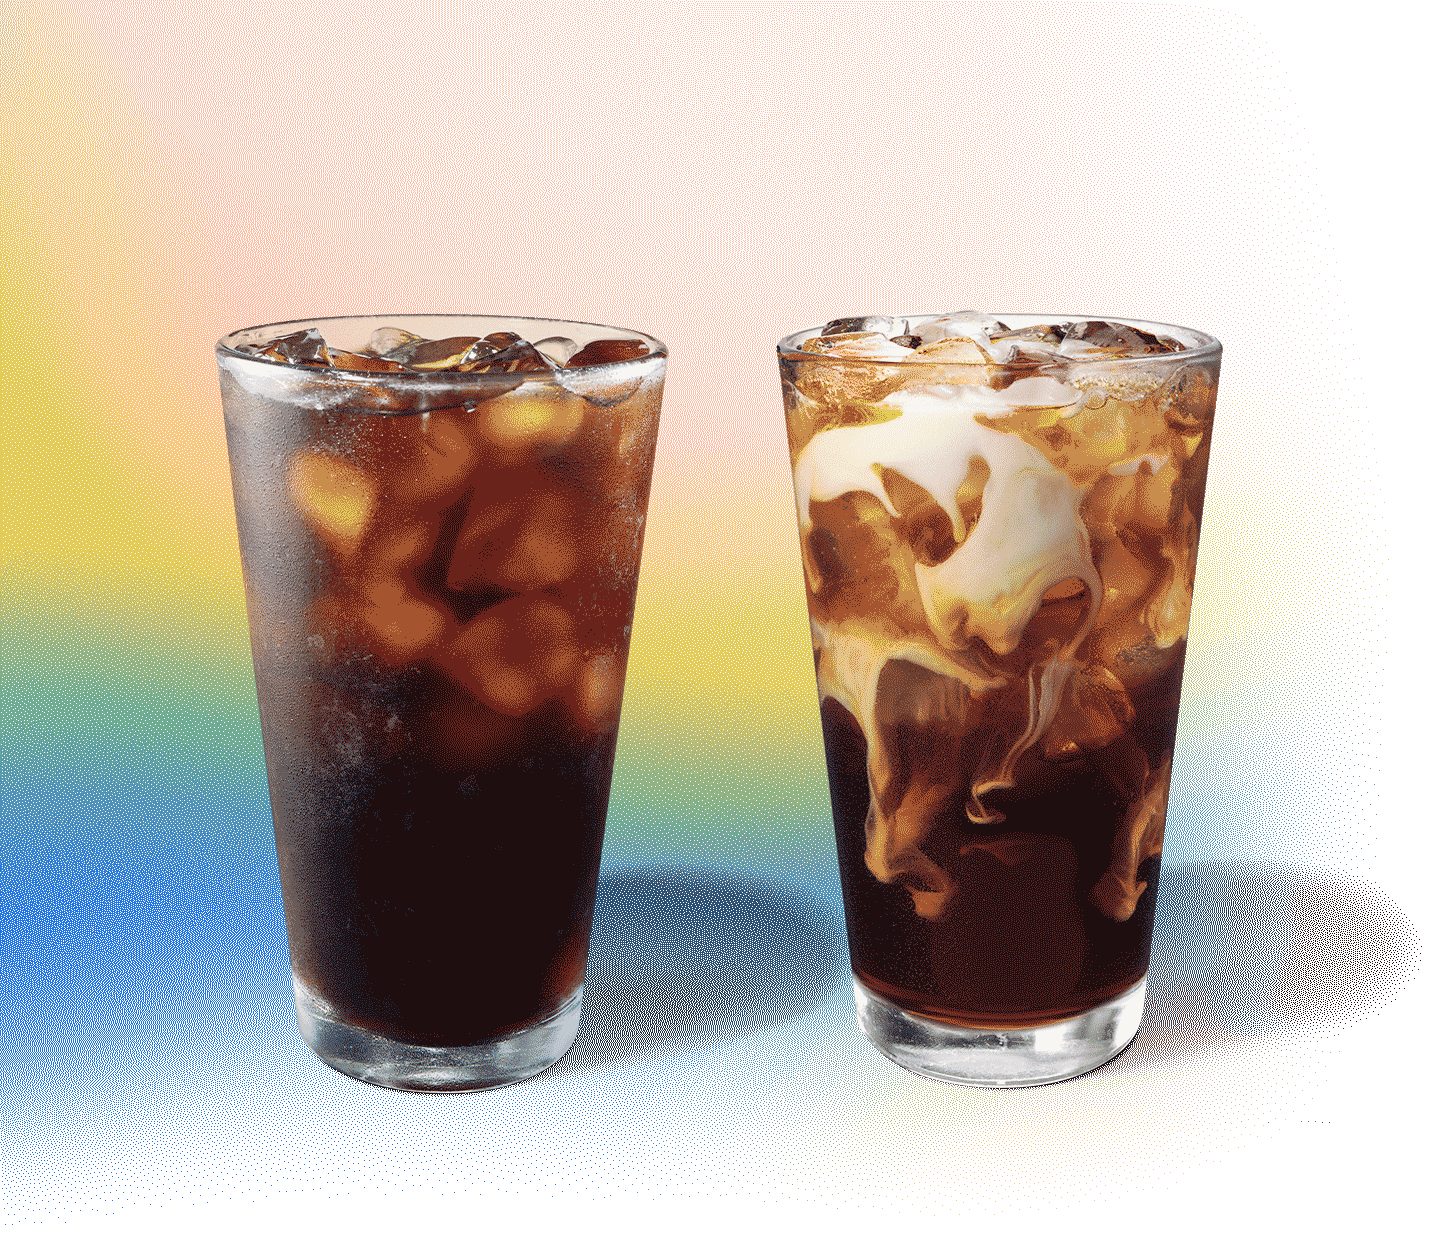 Two iced coffee drinks sit next to each other, one with creamy swirls.